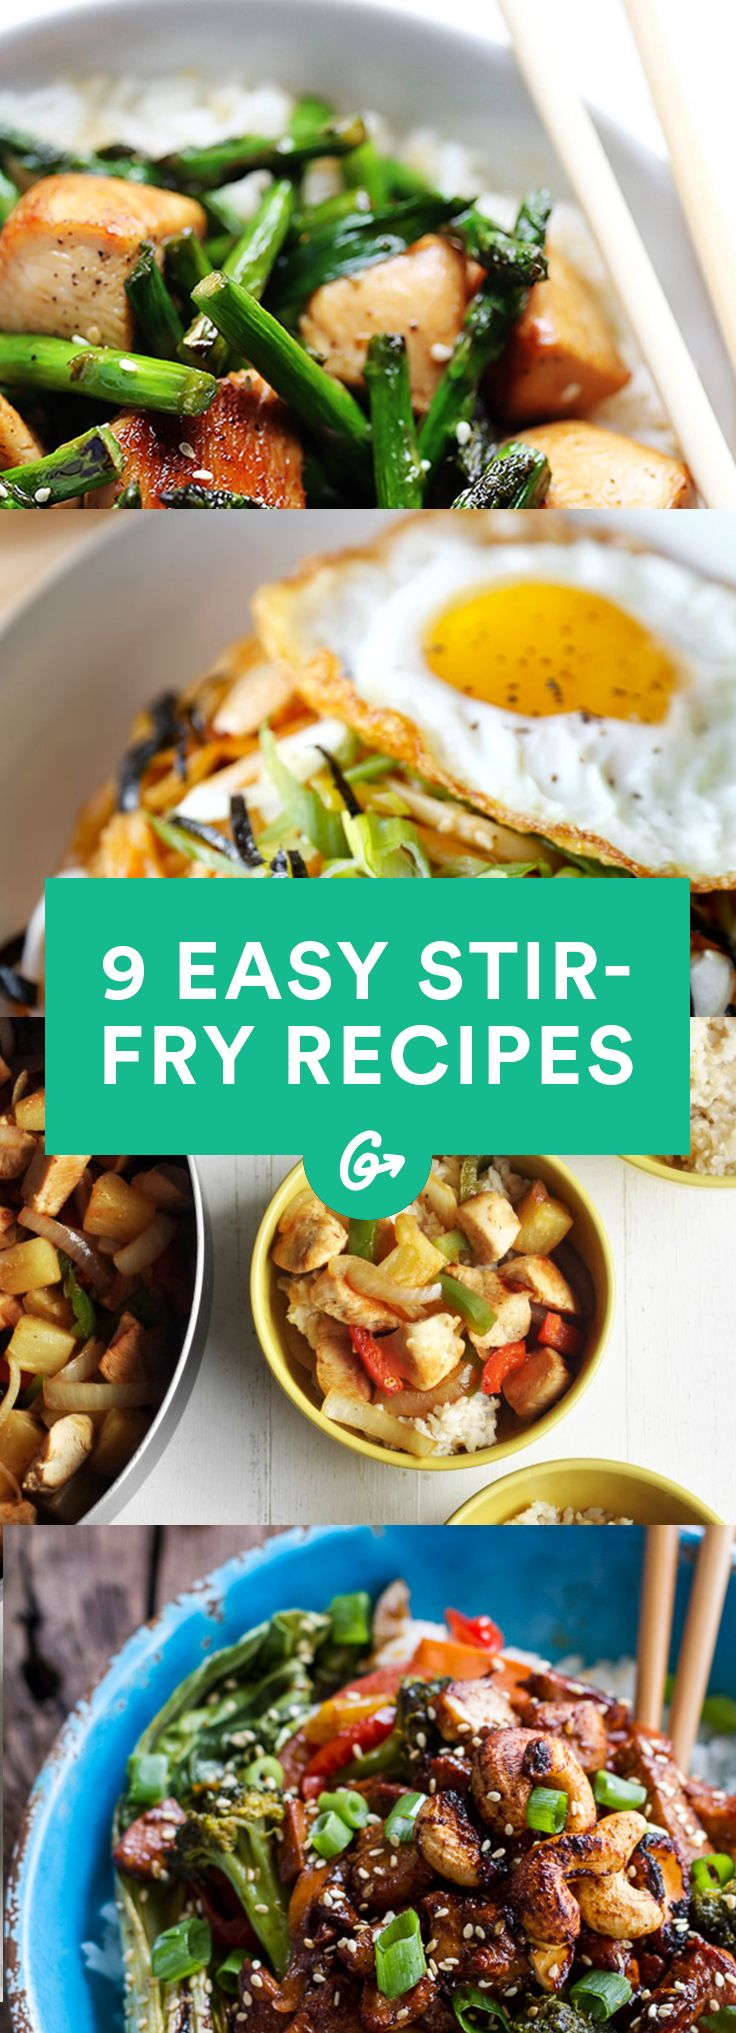 All go from pan to plate in 30 minutes or less. #stirfry #healthyrecipes #recipes #dinner http://greatist.com/eat/easy-stir-fry-recipes